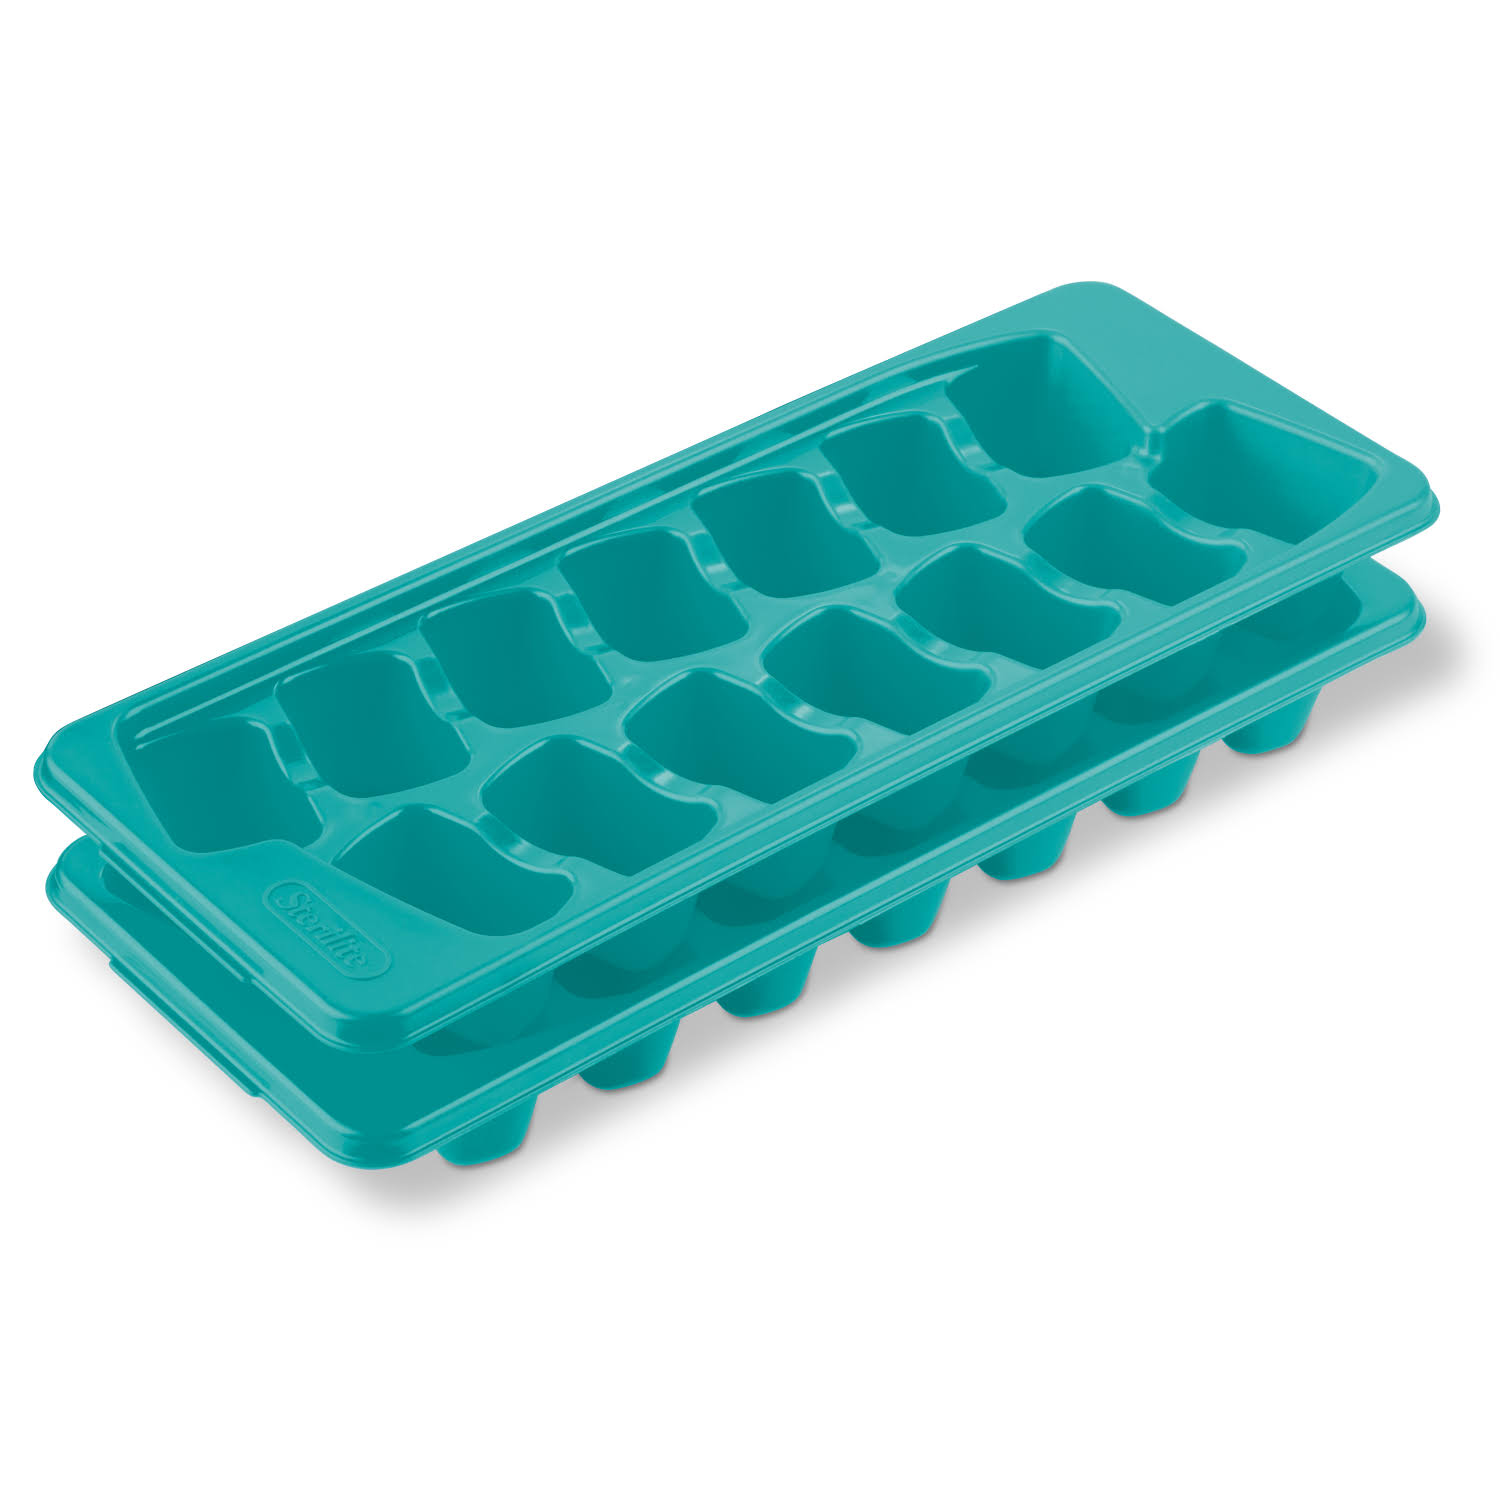 Sterilite Blue Atoll Set of Two Ice Cube Trays